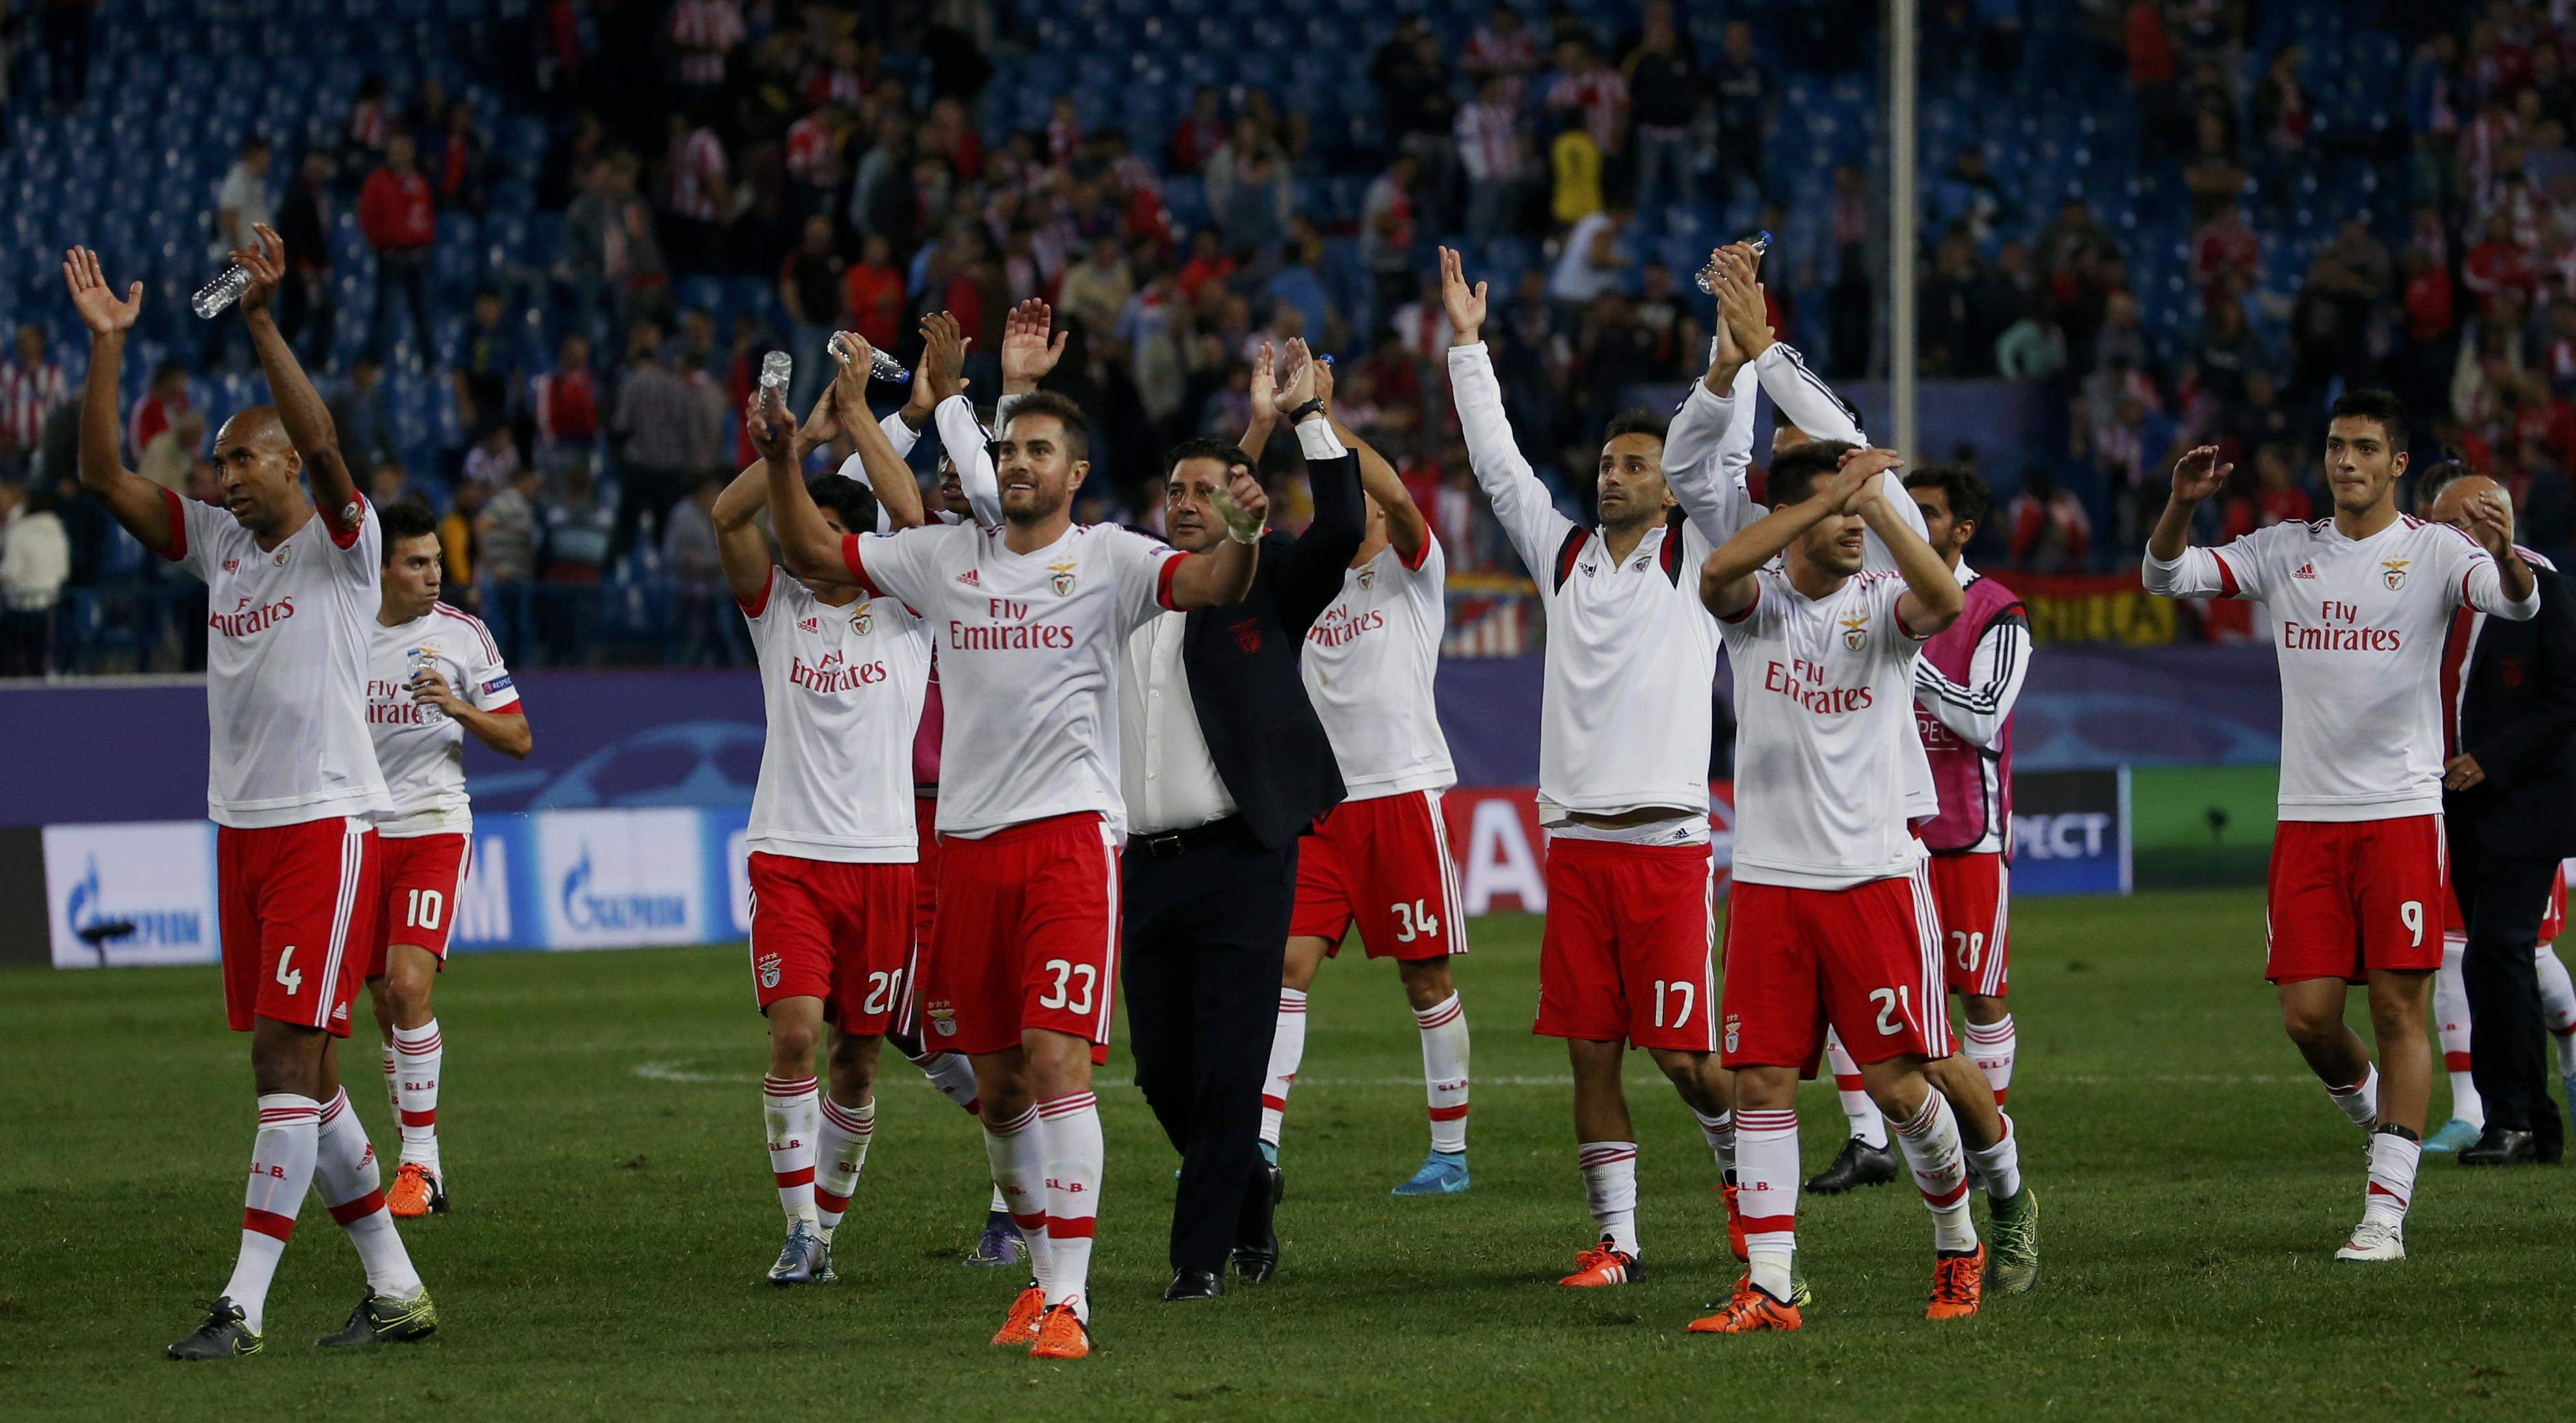 Benfica's players celebrate victory over Atletico Madrid at the end of their Champions League group C soccer match at Vicente Calderon stadium in Madrid, Spain, September 30, 2015. REUTERS/Juan Medina